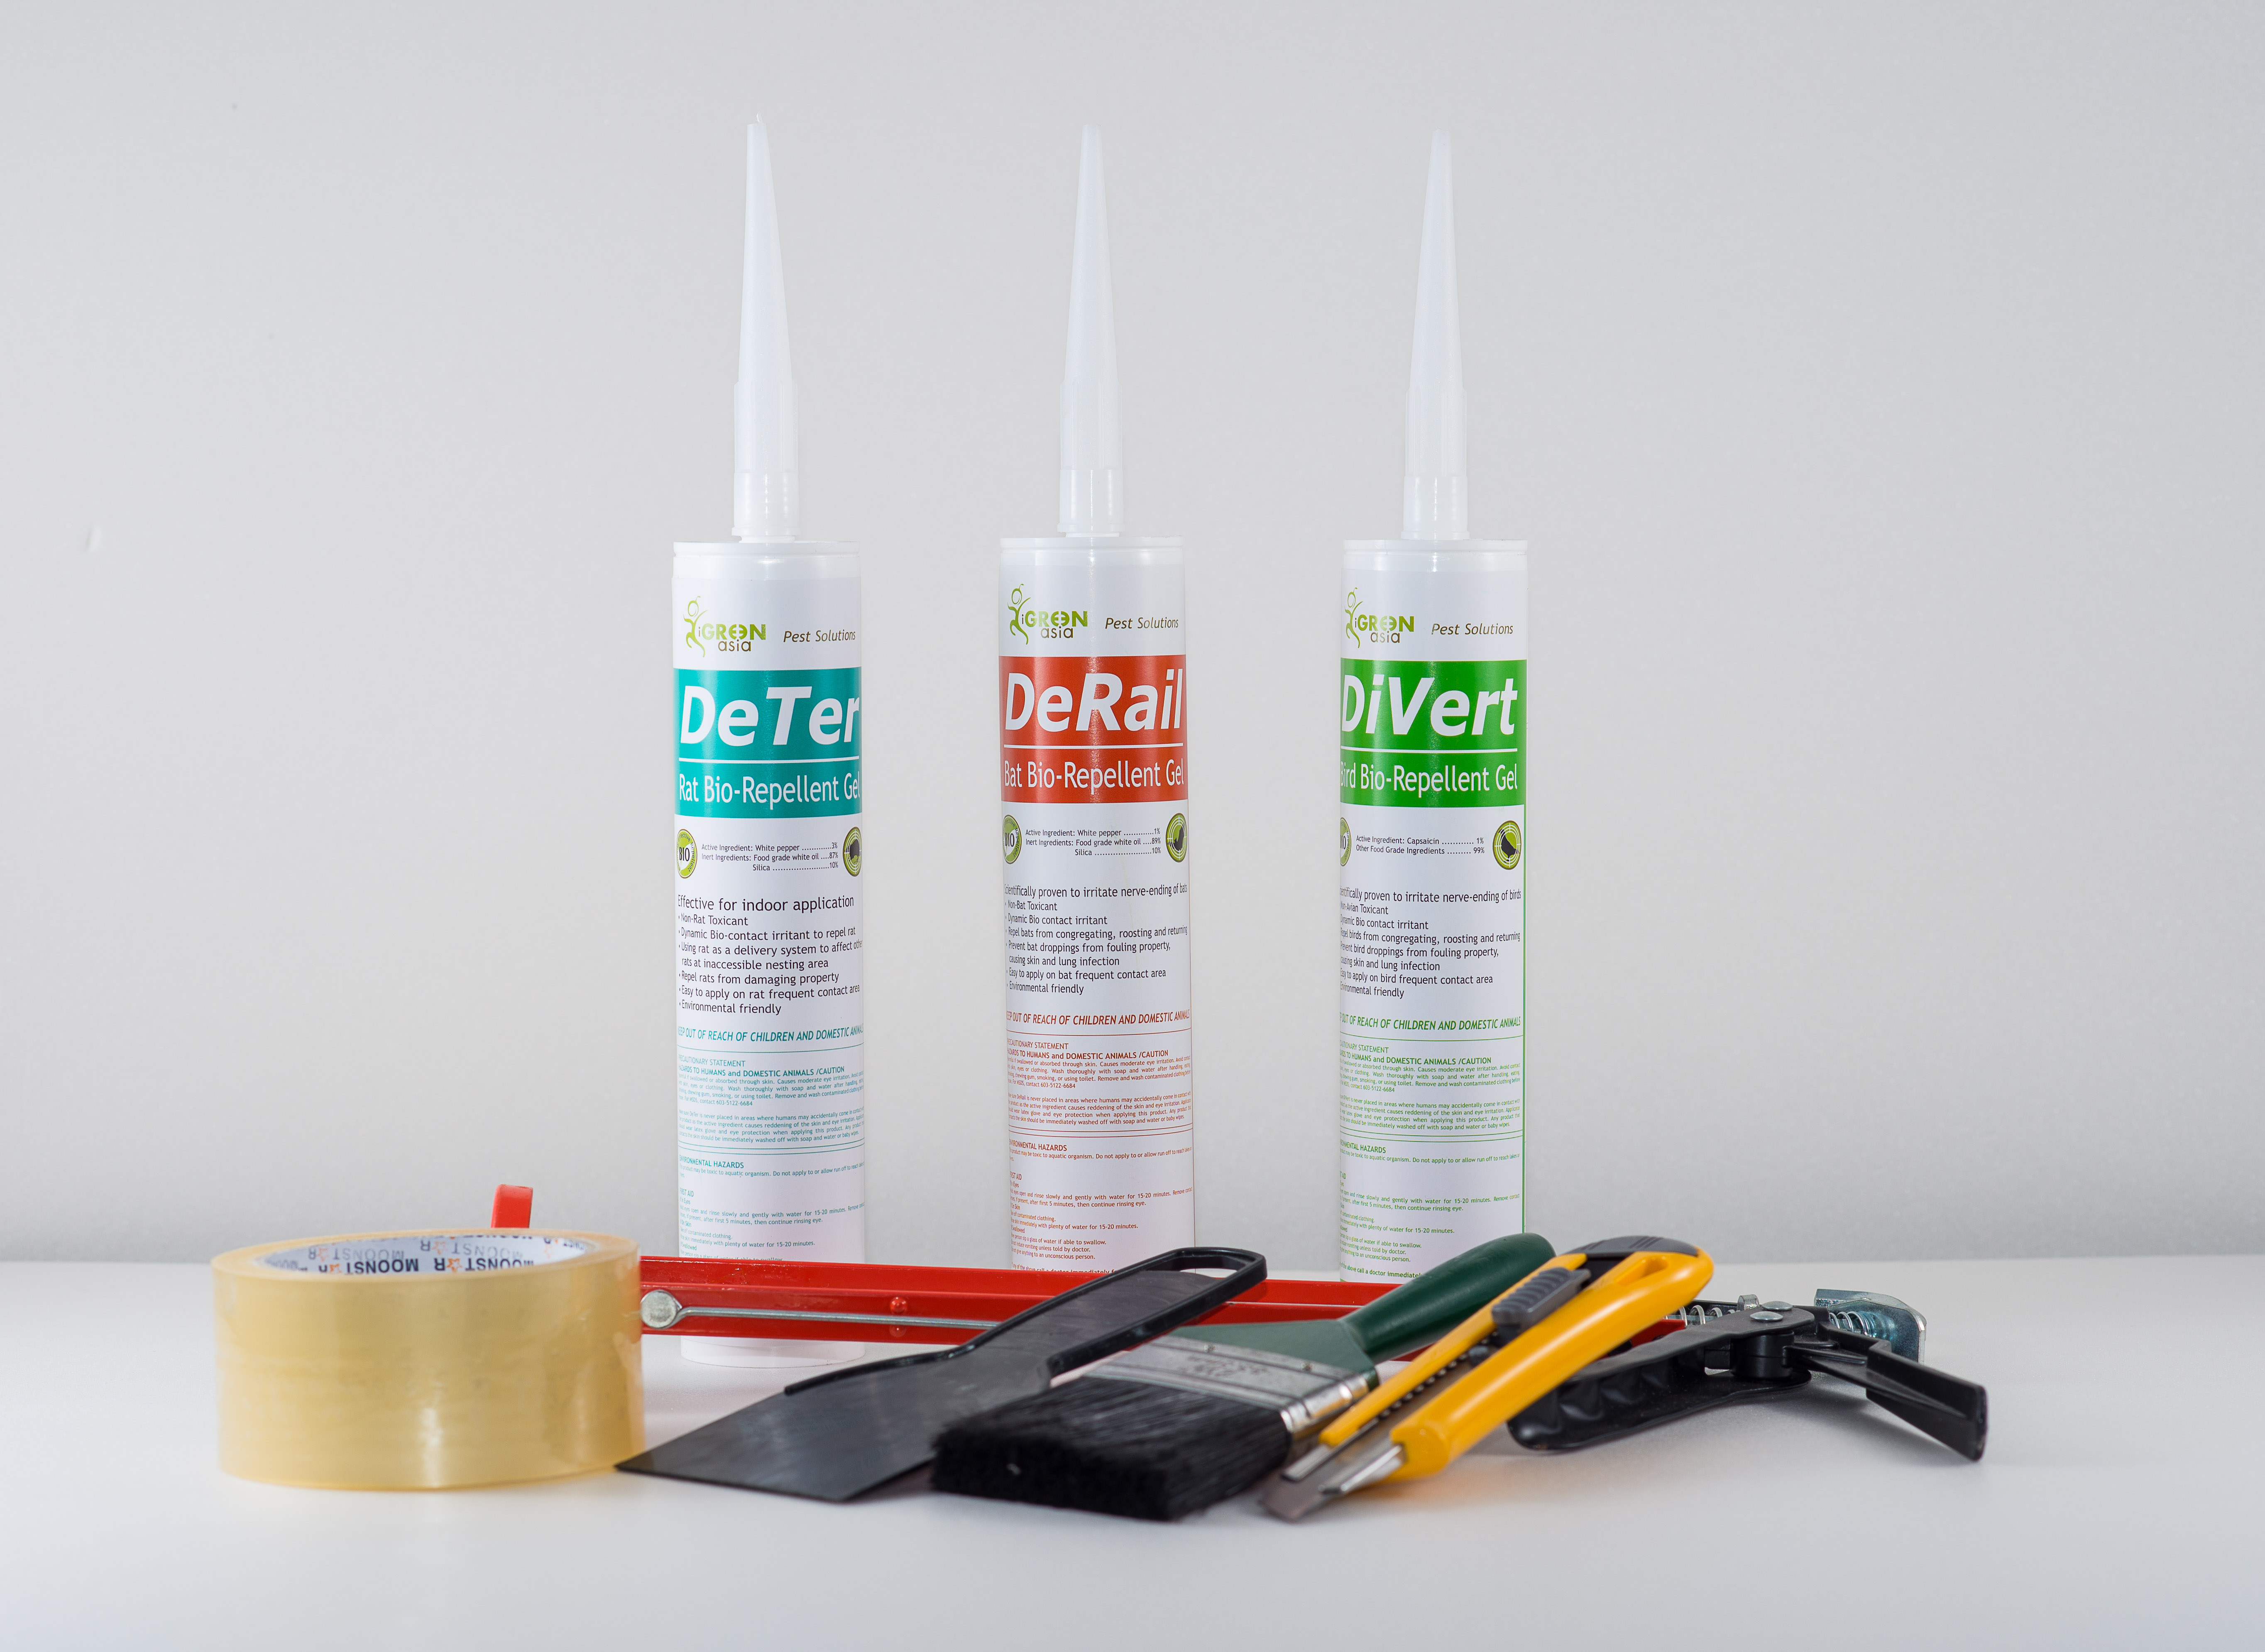 Working Tools: DeTer, DeRail, DiVert Bio-Repellent Gel, Caulking Gun, Paint Brush, Tape, Cutter, Putty Knife, and clear silicone.